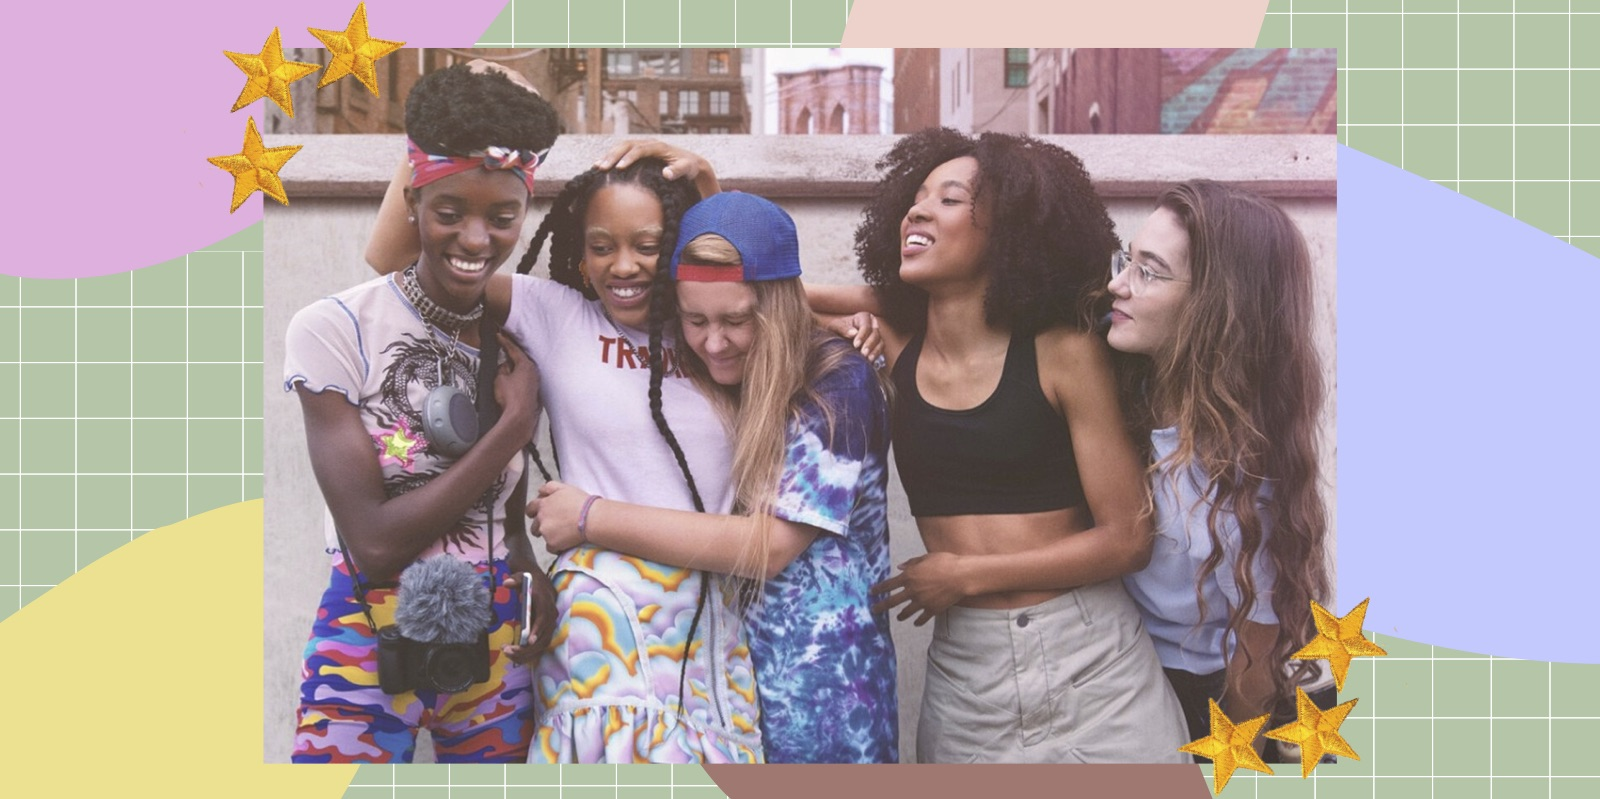 This image is from the TV series Betty (2020). Five girls hug one another whilst engaged in laughter and conversation. This image is surrounded by a green grid, pastel coloured shapes and fabric stars.